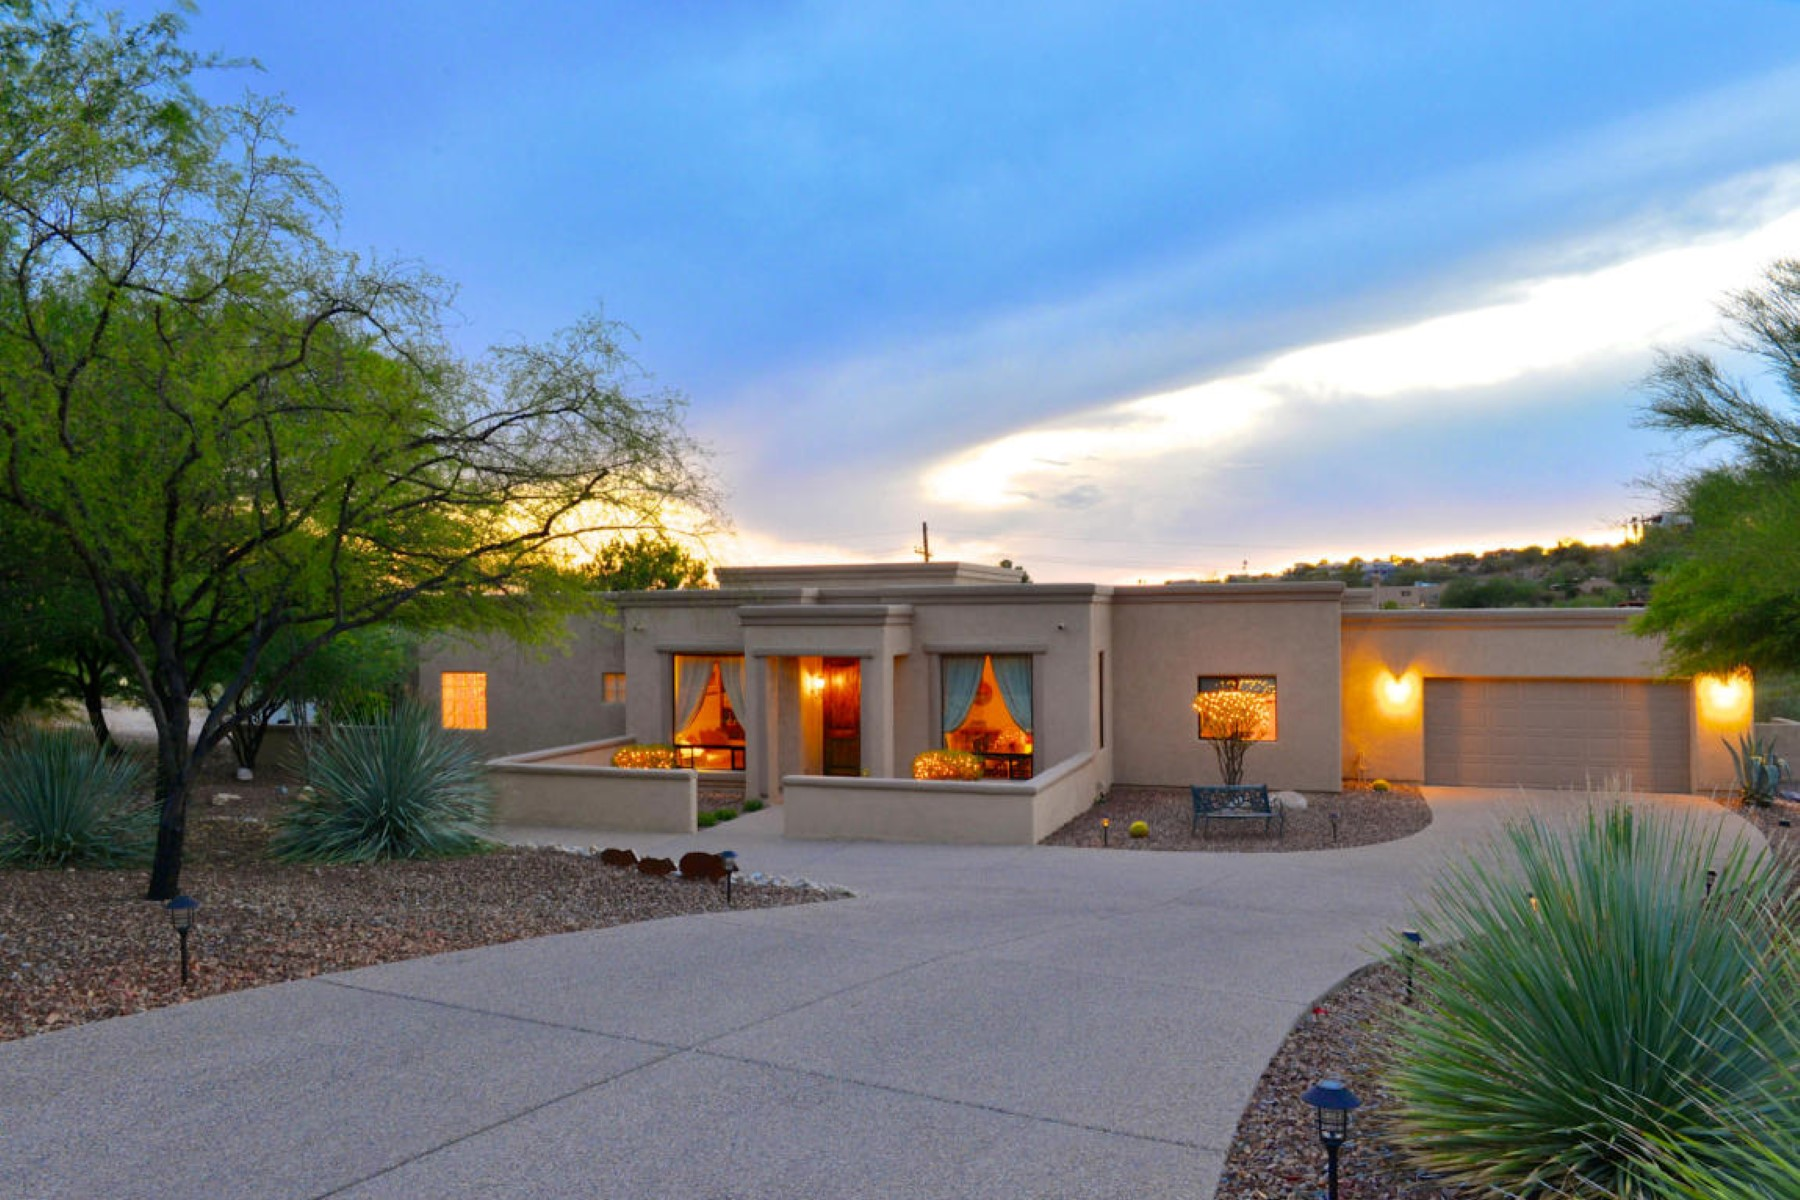 Single Family Home for Sale at Custom four bedroom + den on quiet culdesac. 3923 N Lindstrom Place Tucson, Arizona 85750 United States